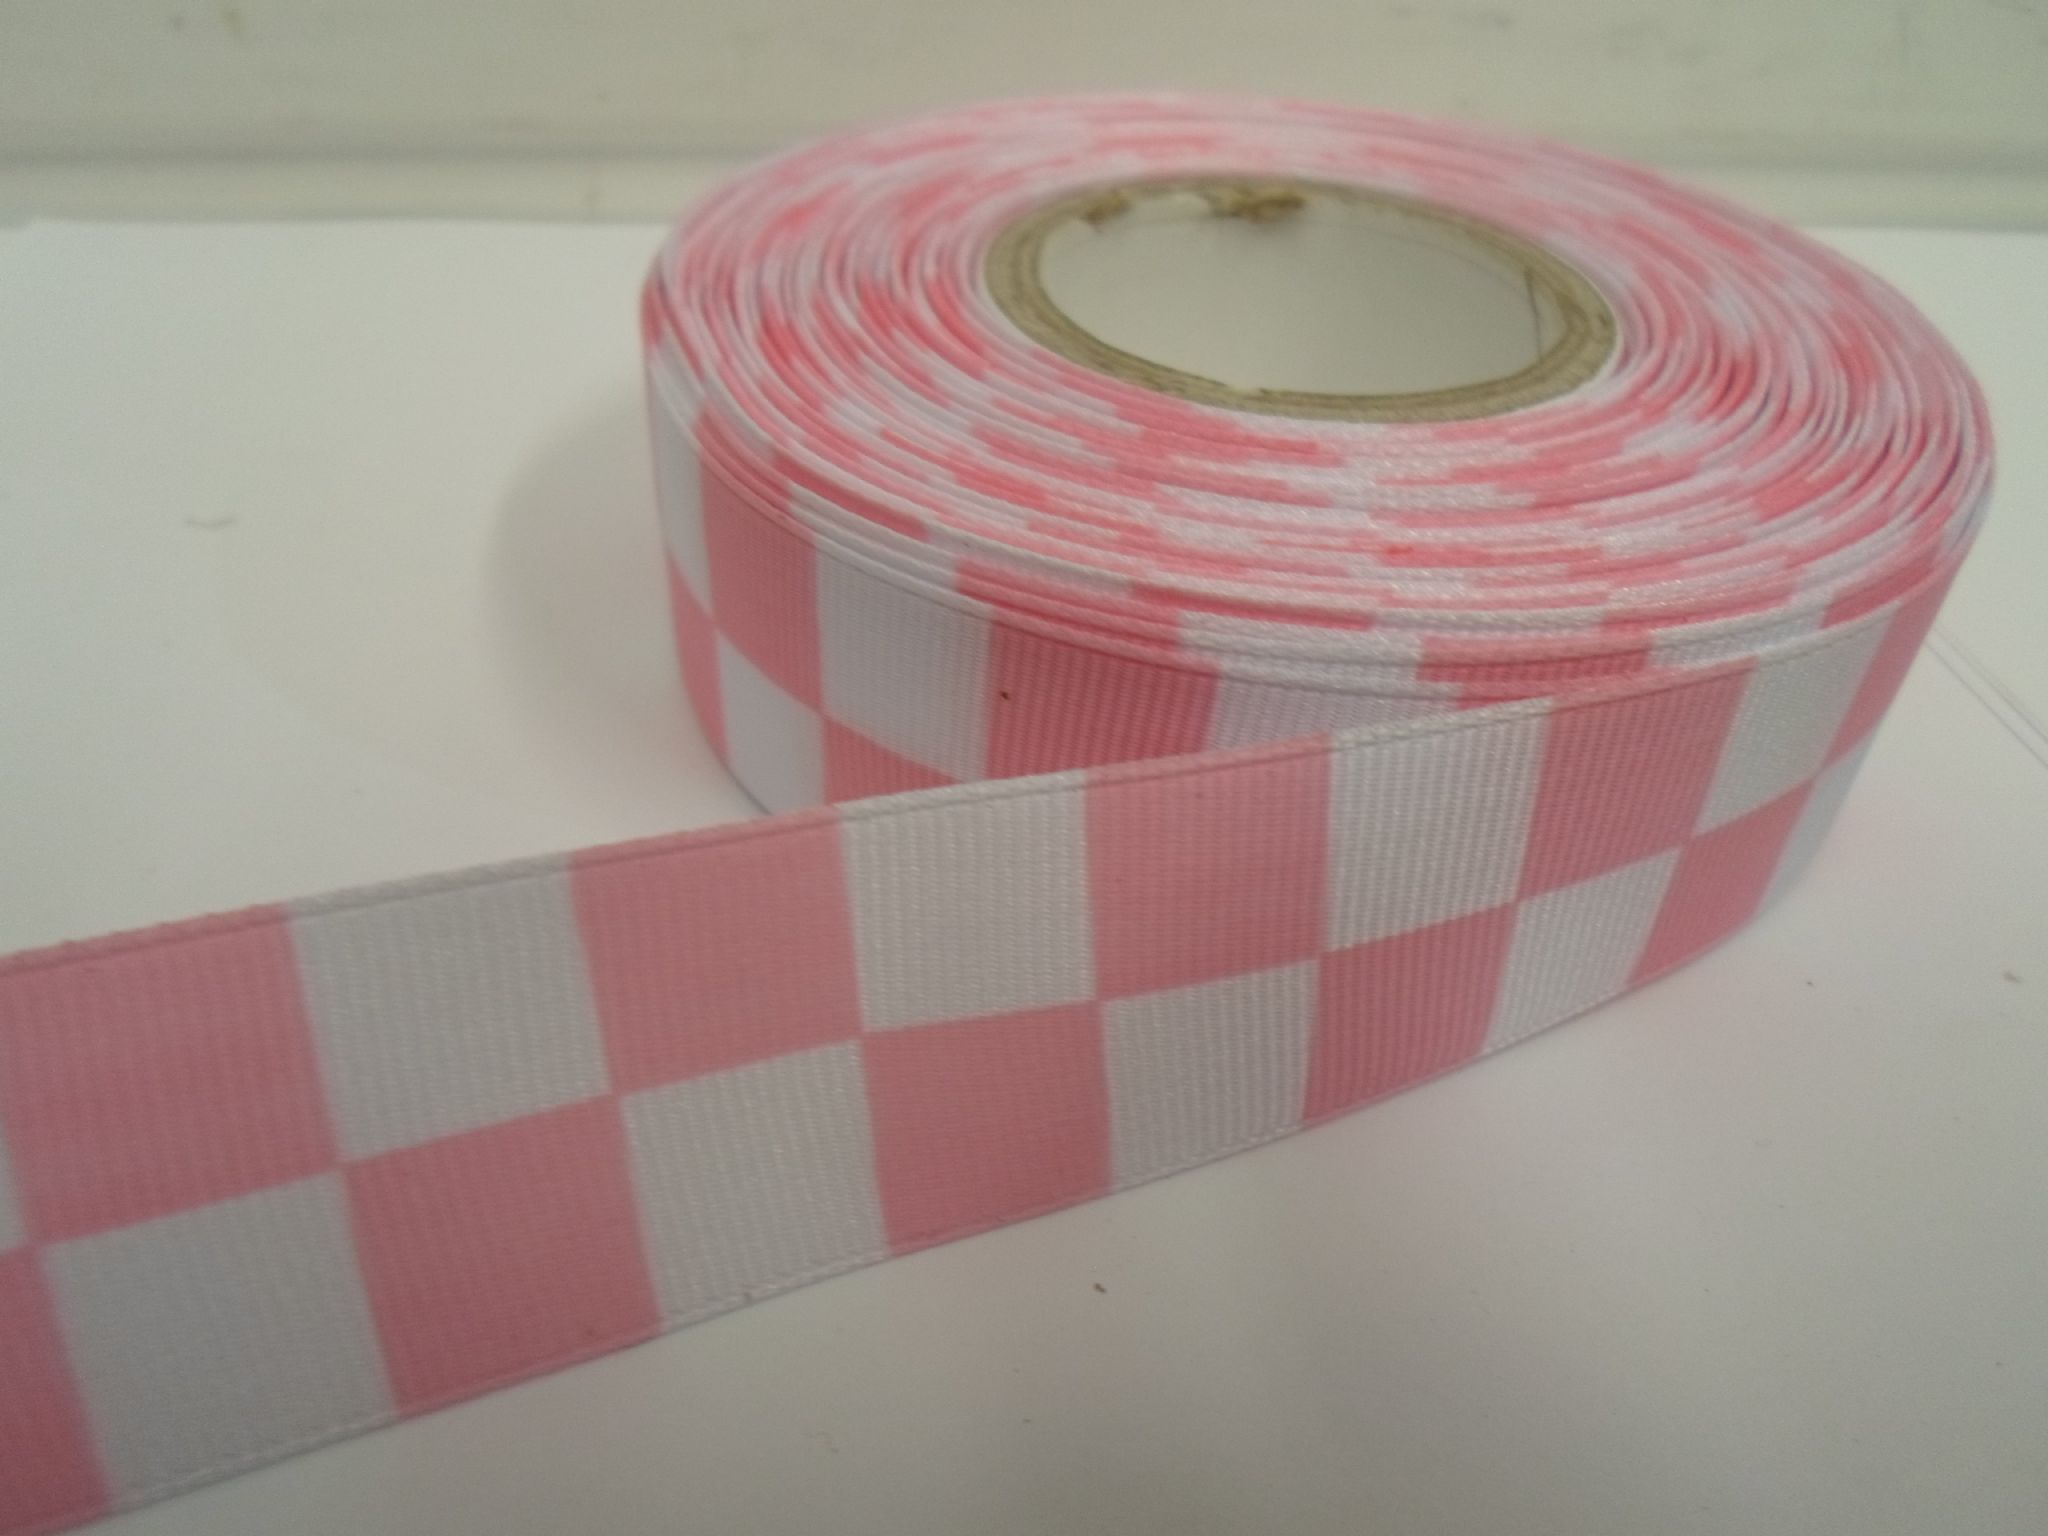 Baby light pink white 2 metres or 20 metre roll x 25mm grosgrain baby light pink white 2 metres or 20 metre roll x 25mm grosgrain ribbon square chequered block race track finish line aloadofball Image collections